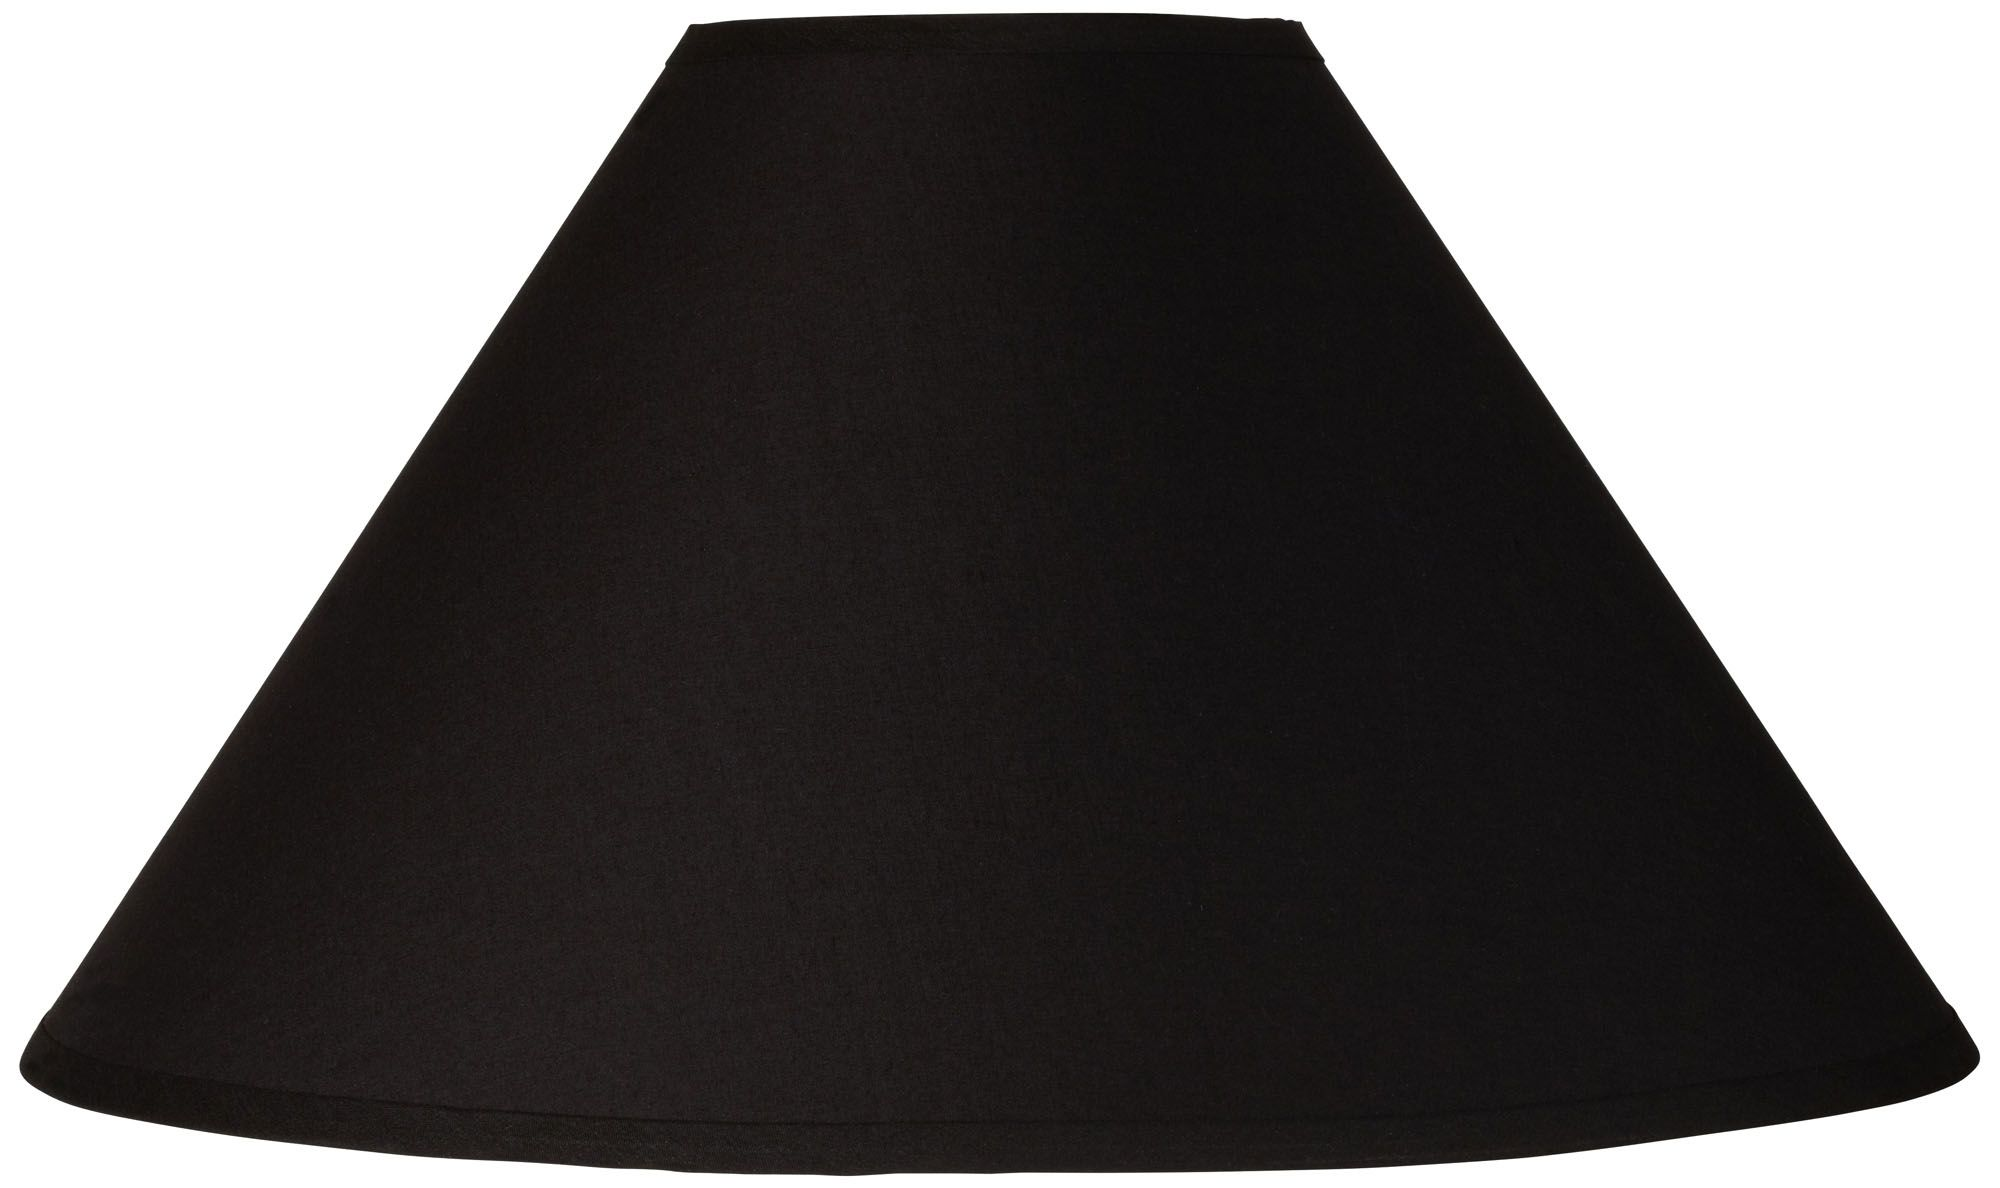 Black Chimney Empire Lamp Shade 6x19x12 (Spider)